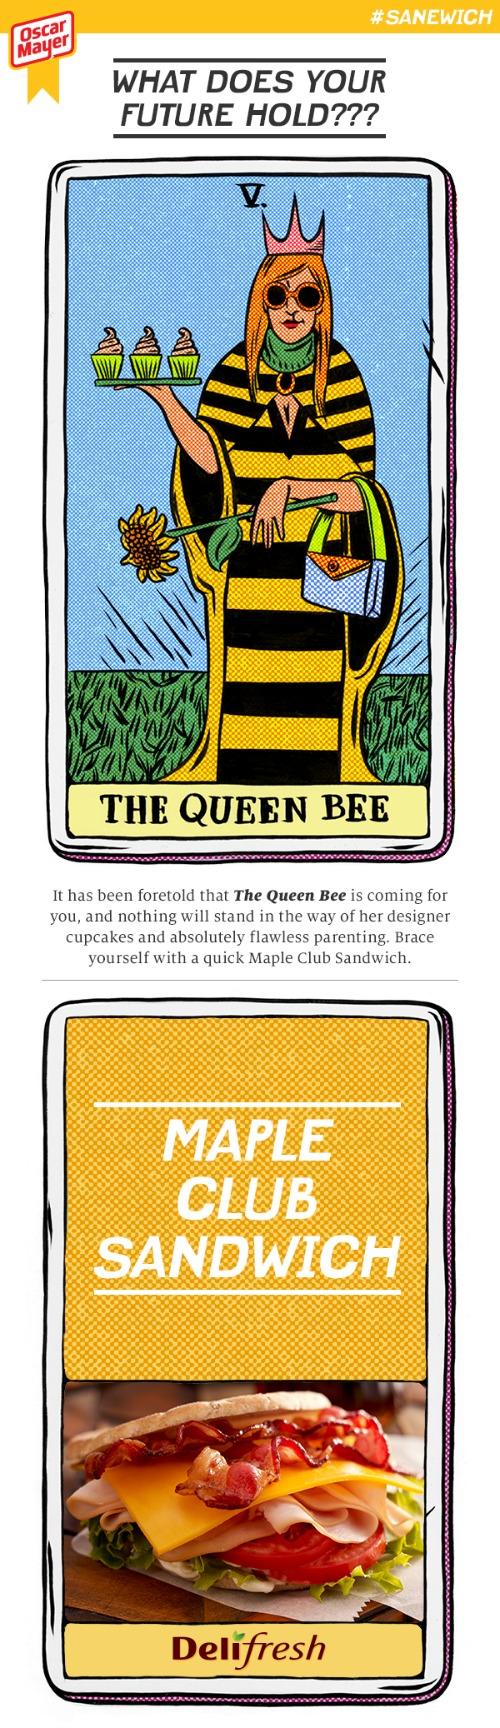 OM_Sanewich_Pin_The_Queen_Bee